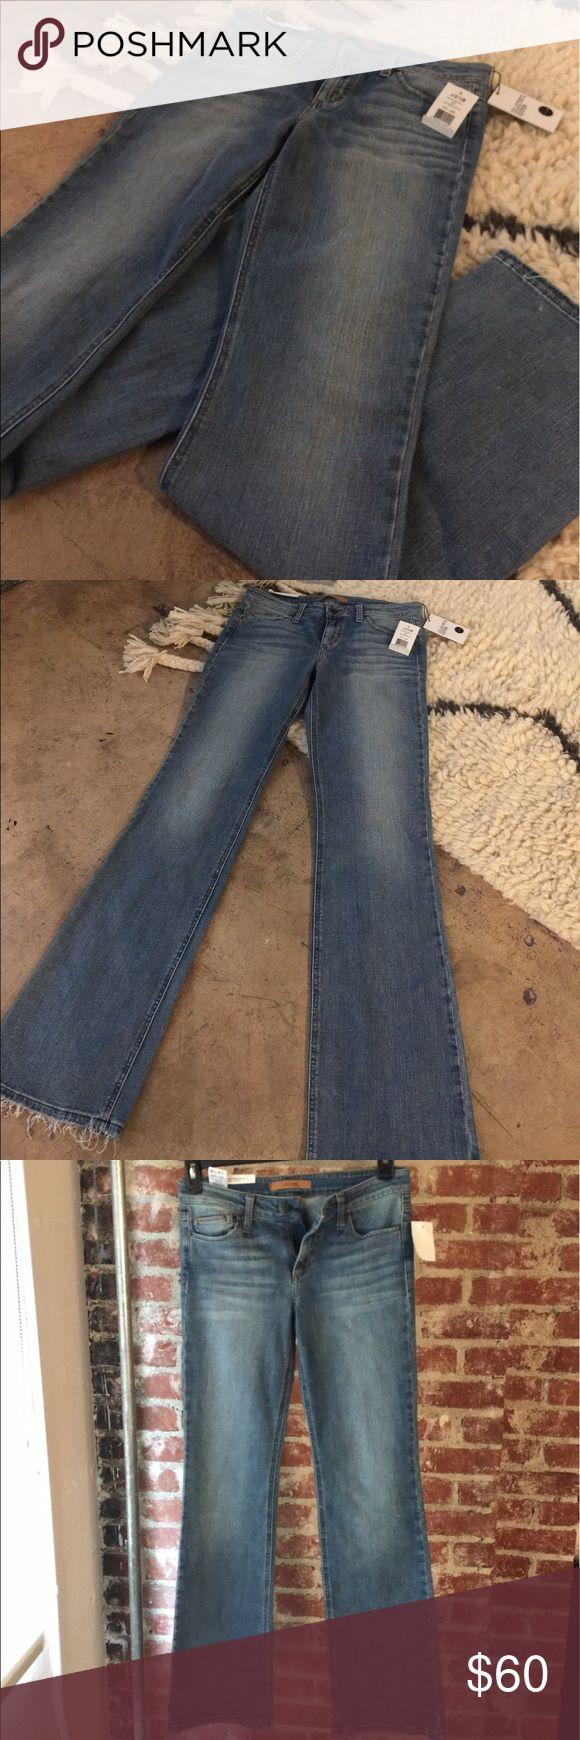 Joe's Jeans The Vixen Sassy Boot Cut Jeans Fits great. Perfect boot cut. Works well with heels, flats and fits over boots. You'll definitely feel like a Vixen in these. Joe's Jeans Jeans Boot Cut